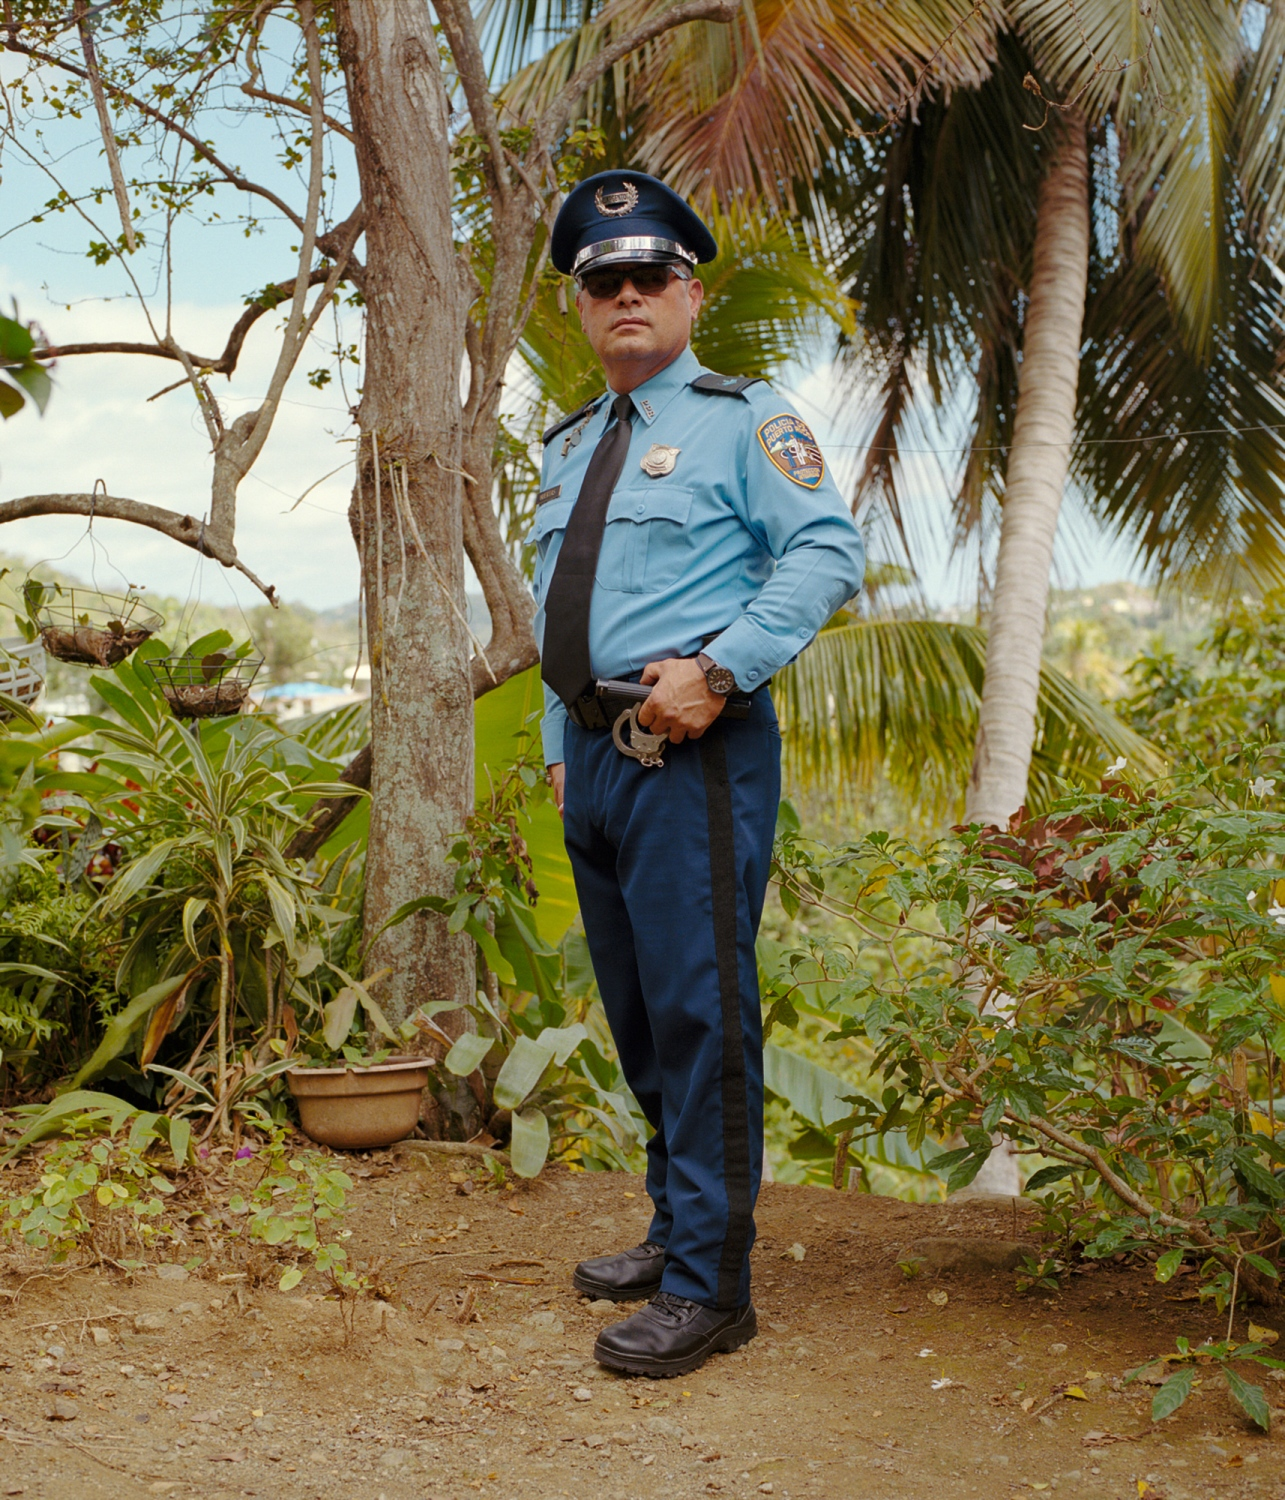 My uncle Luis stands in his Puerto Rico Police Department uniform with the city of Ponce behind him. He has been a police officer on the island for just over 31 years. Over lunch, he spoke about his fear of a crime wave after the blackouts hit the island, last year after the storm. Ponce, Puerto Rico, February 2018.